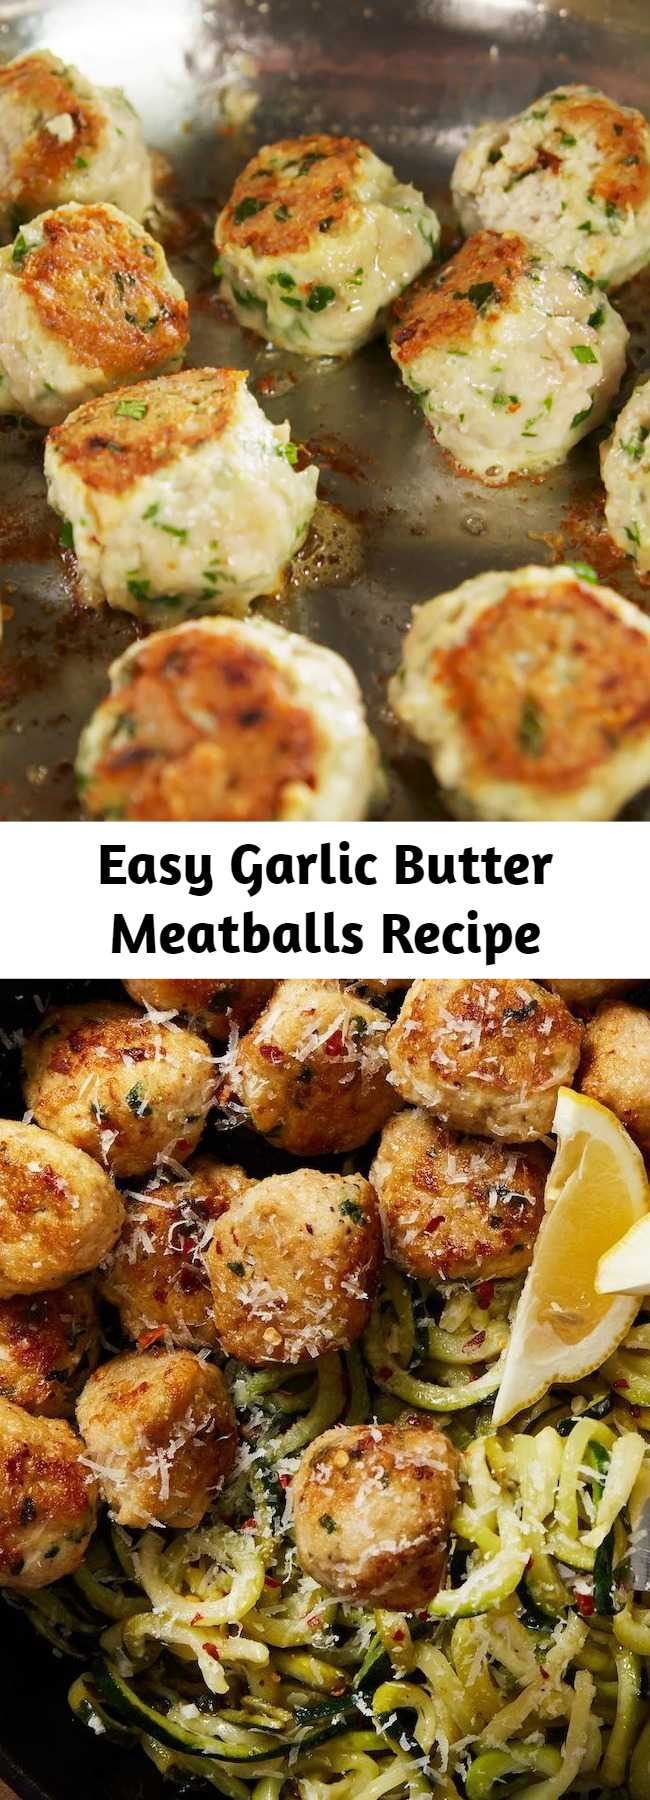 Easy Garlic Butter Meatballs Recipe - These garlic butter meatballs are low-carb, gluten free, and all around better for you without skipping out on any of the tastiness. #easy #recipe #glutenfree #lowcarb #healthy #garlic #butter #meatballs #chicken #easy #diet